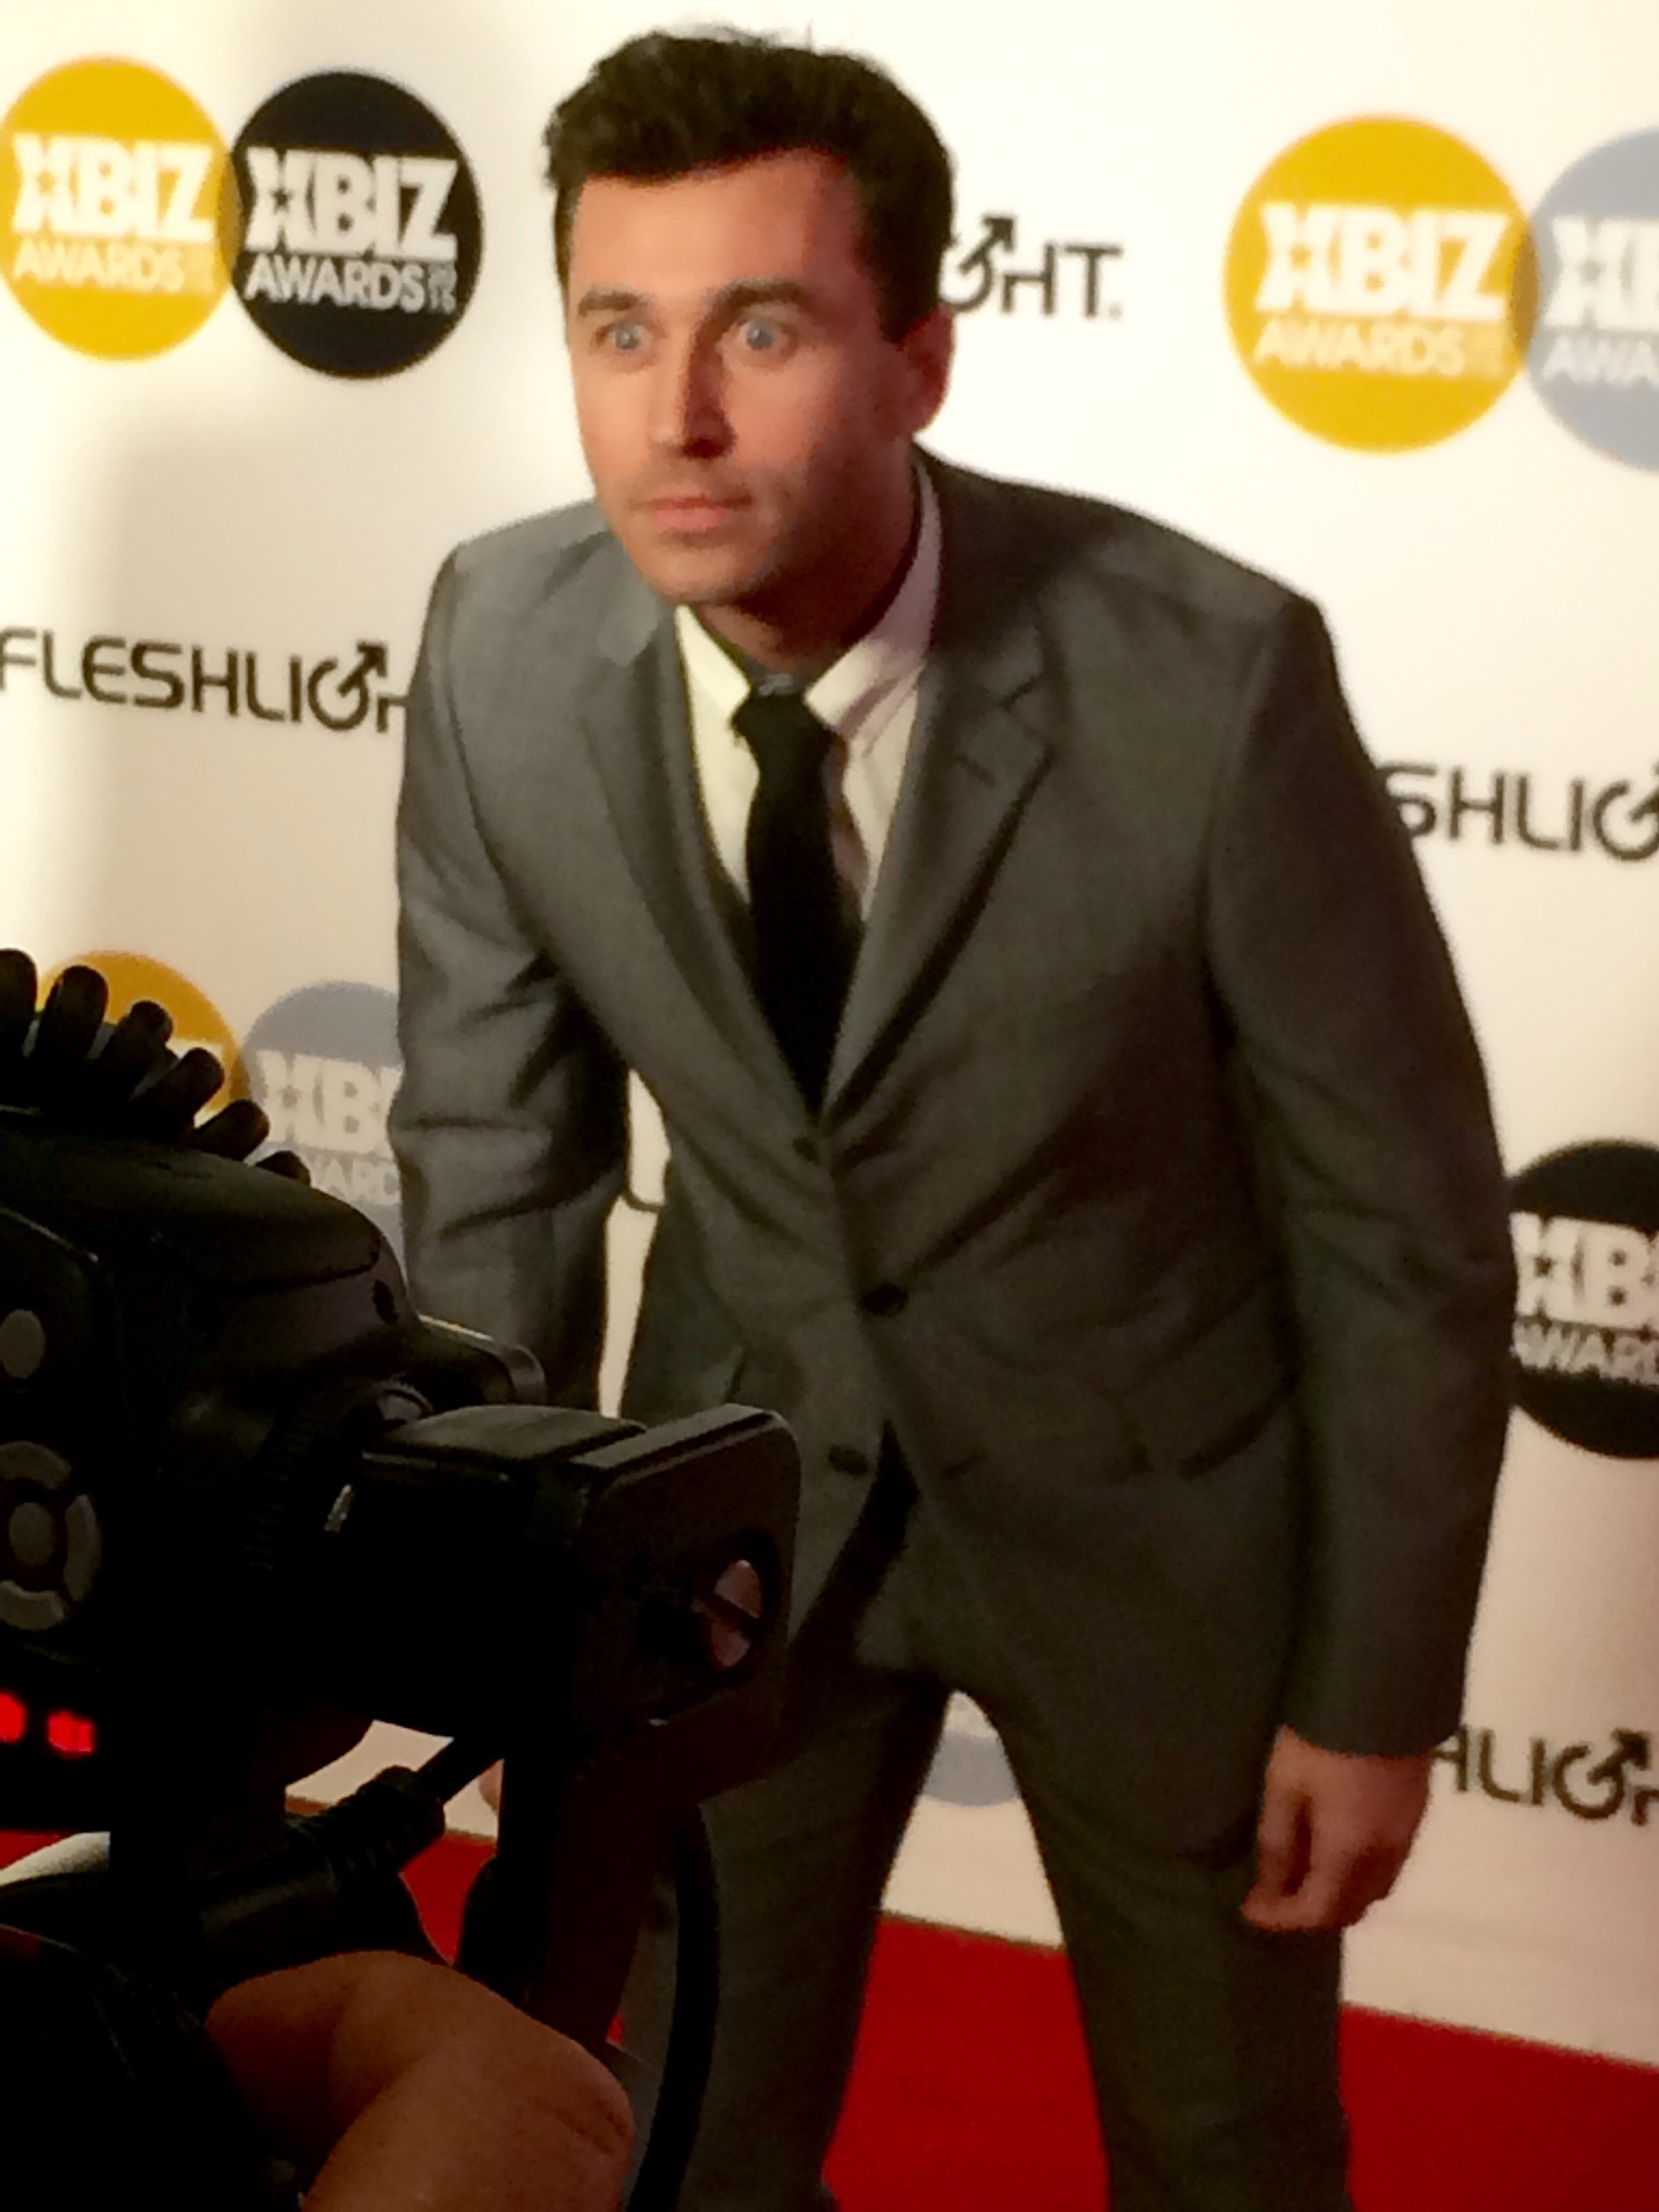 James Deen at the 2015 XBIZ Awards in Los Angeles